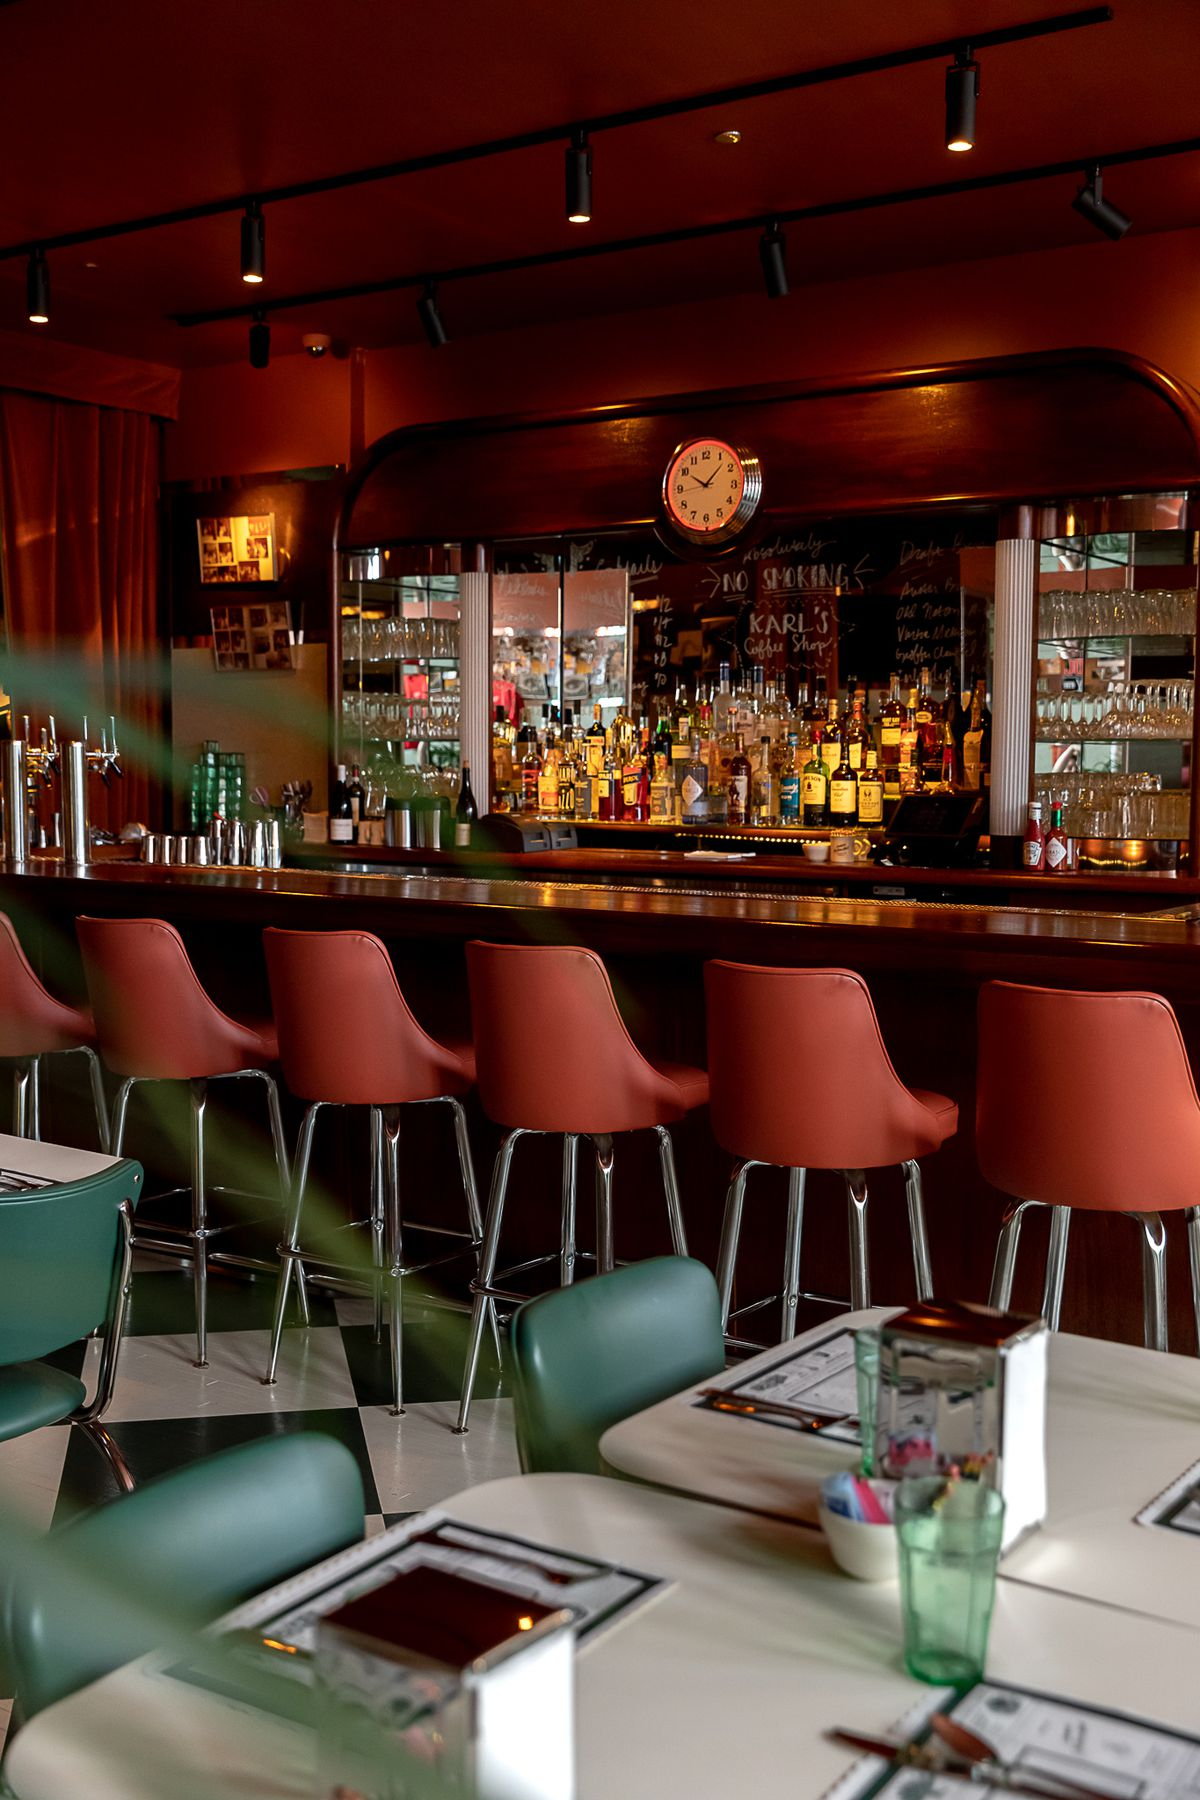 The bar at Karl's has an Art Deco aesthetic with a curved back bar and a mirror topped with a round clock and orange high backed bar stools.